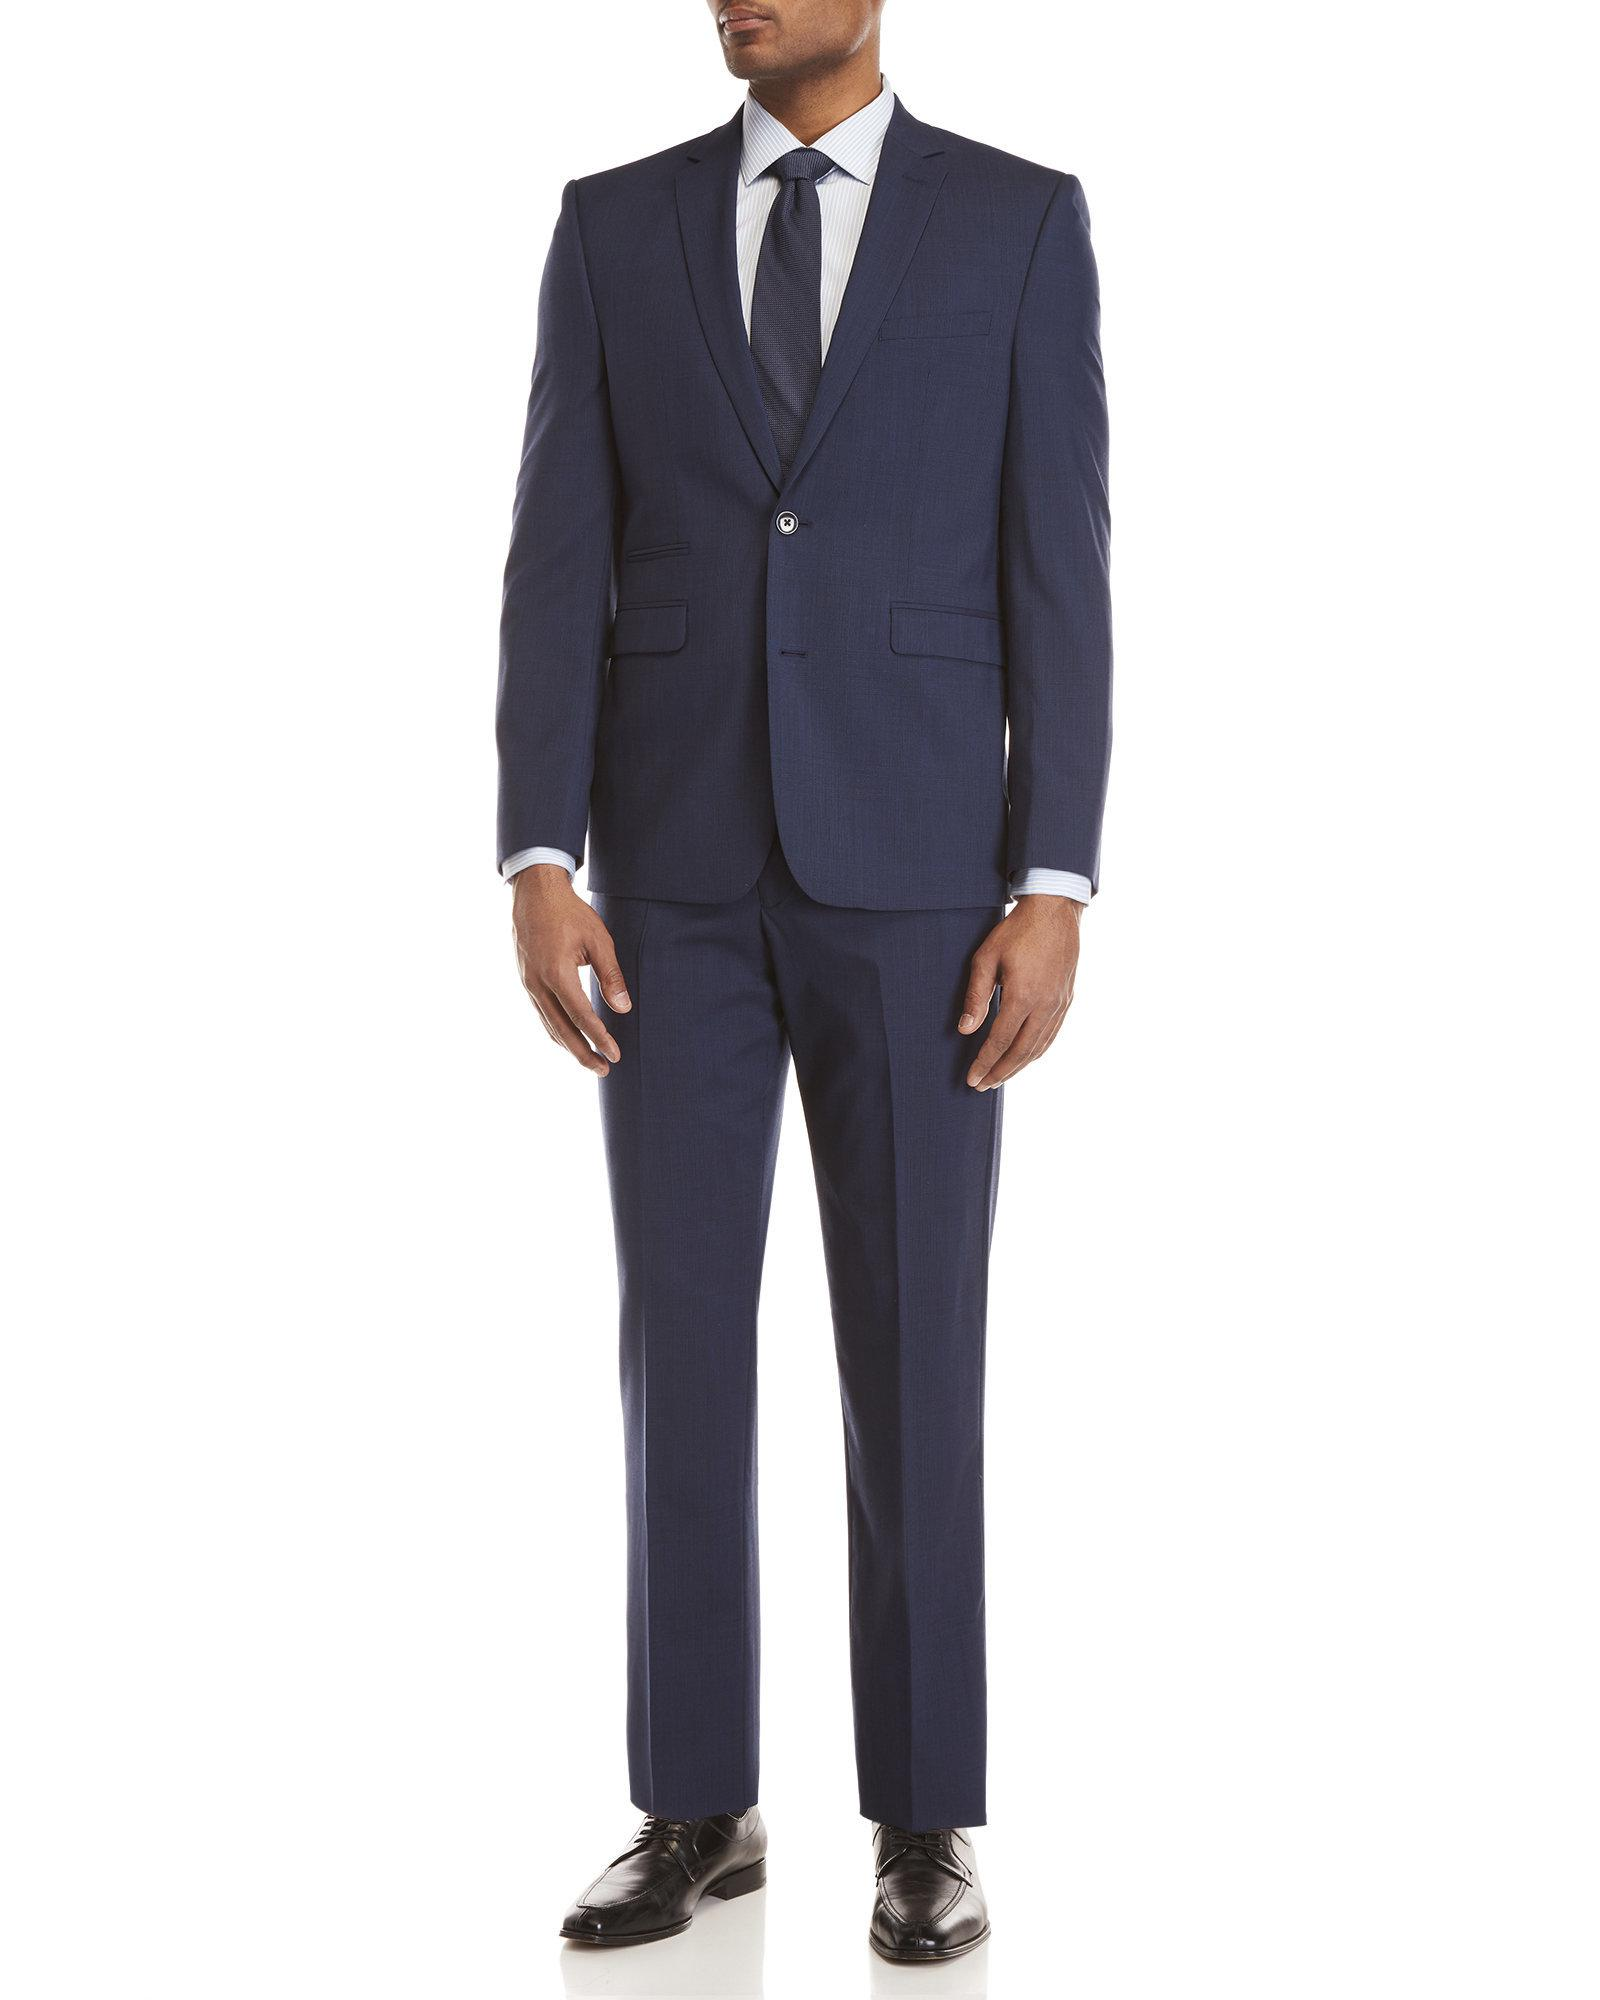 Vince Camuto Modern Fit Stretch Plaid 2-Piece Suit Buy Cheap Pick A Best Buy Cheap View Outlet Recommend wRdrsl8